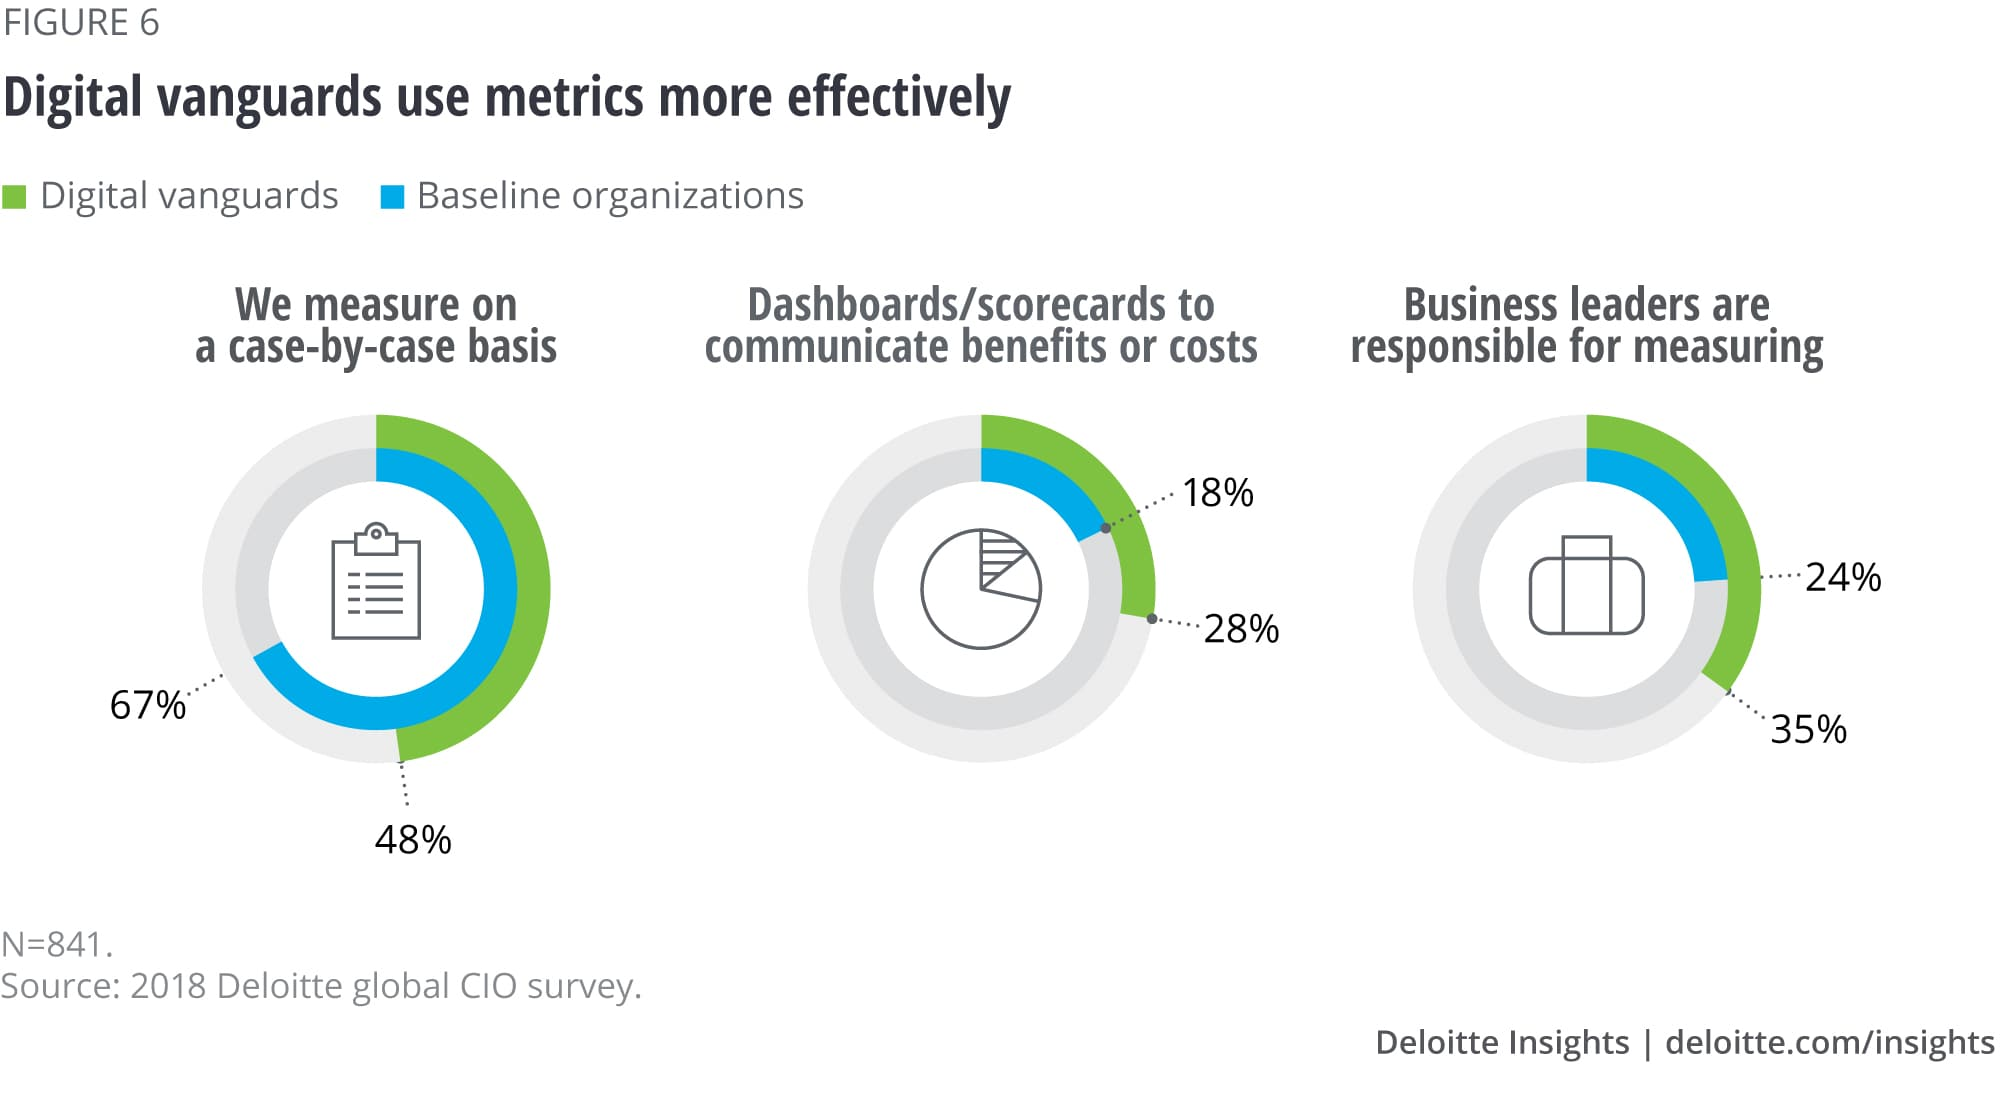 Digital vanguards use metrics effectively